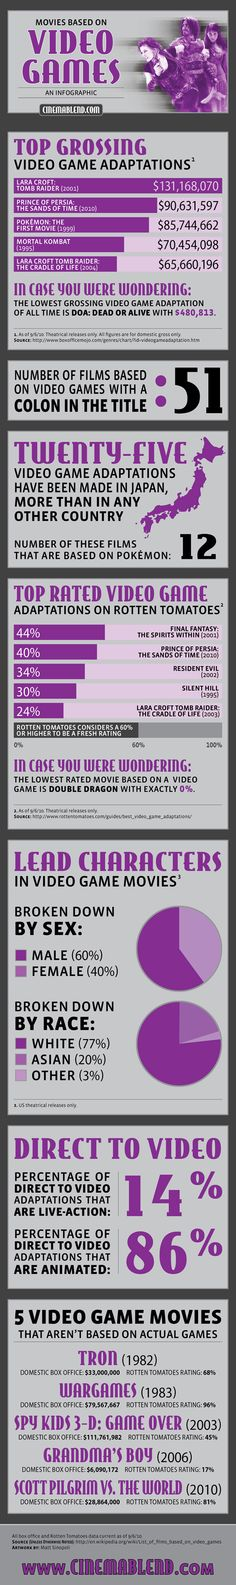 I like this because it shows gaming in a different context. This ASF shows how video games are represented in other forms of media.